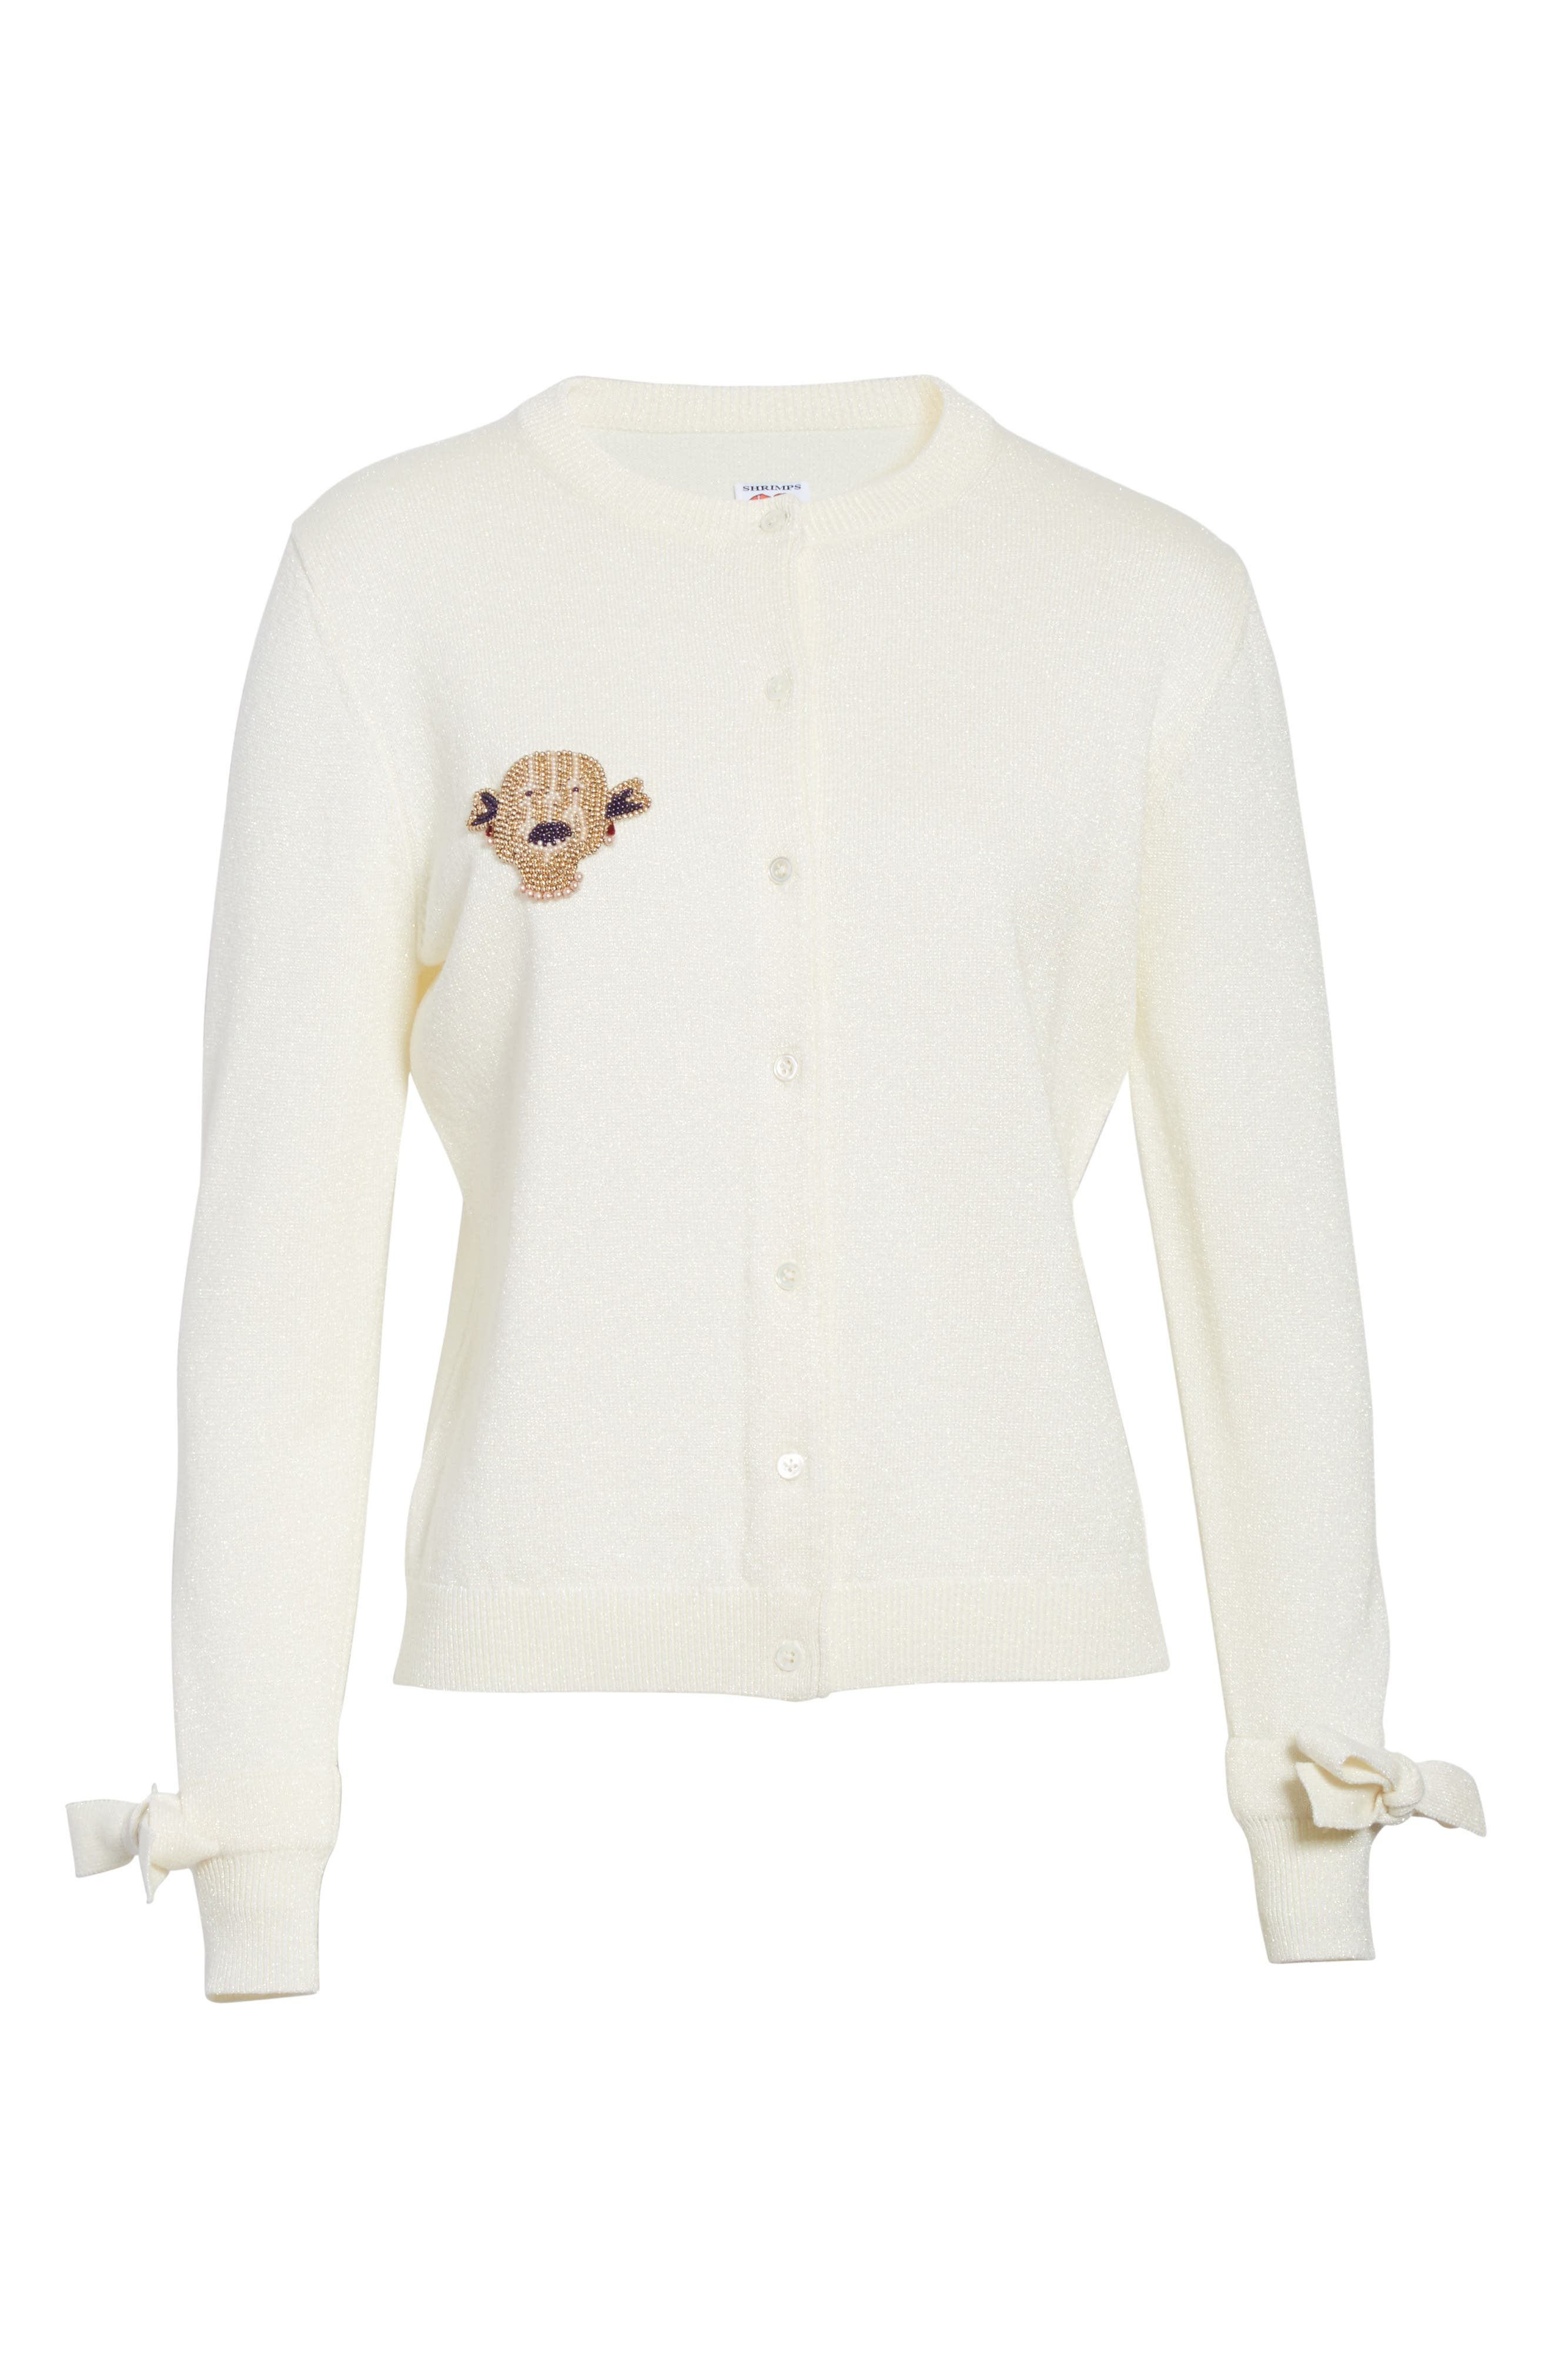 Lorna Embellished Bow Cuff Cardigan,                             Alternate thumbnail 6, color,                             900